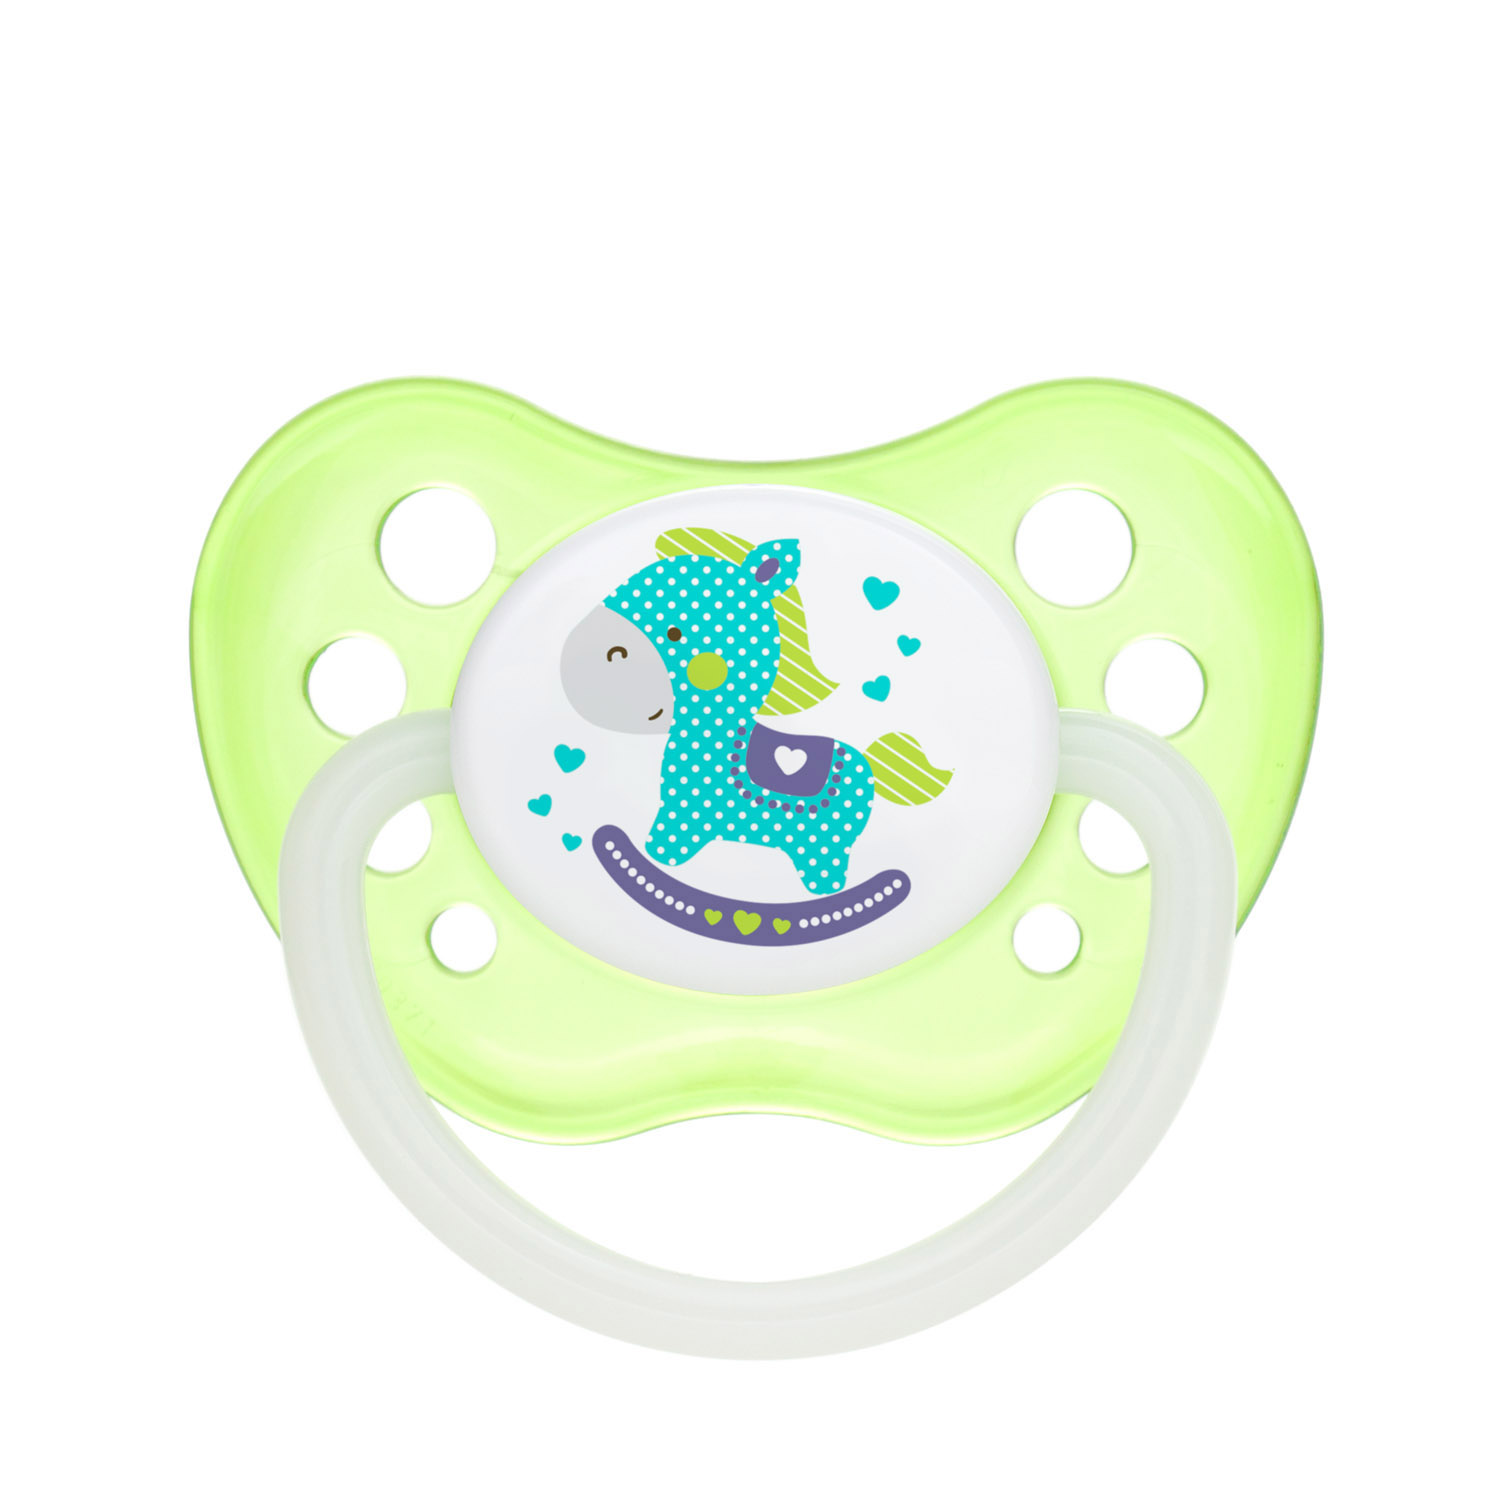 Canpol babies Silicone Orthodontic Soother 0-6m TOYS green